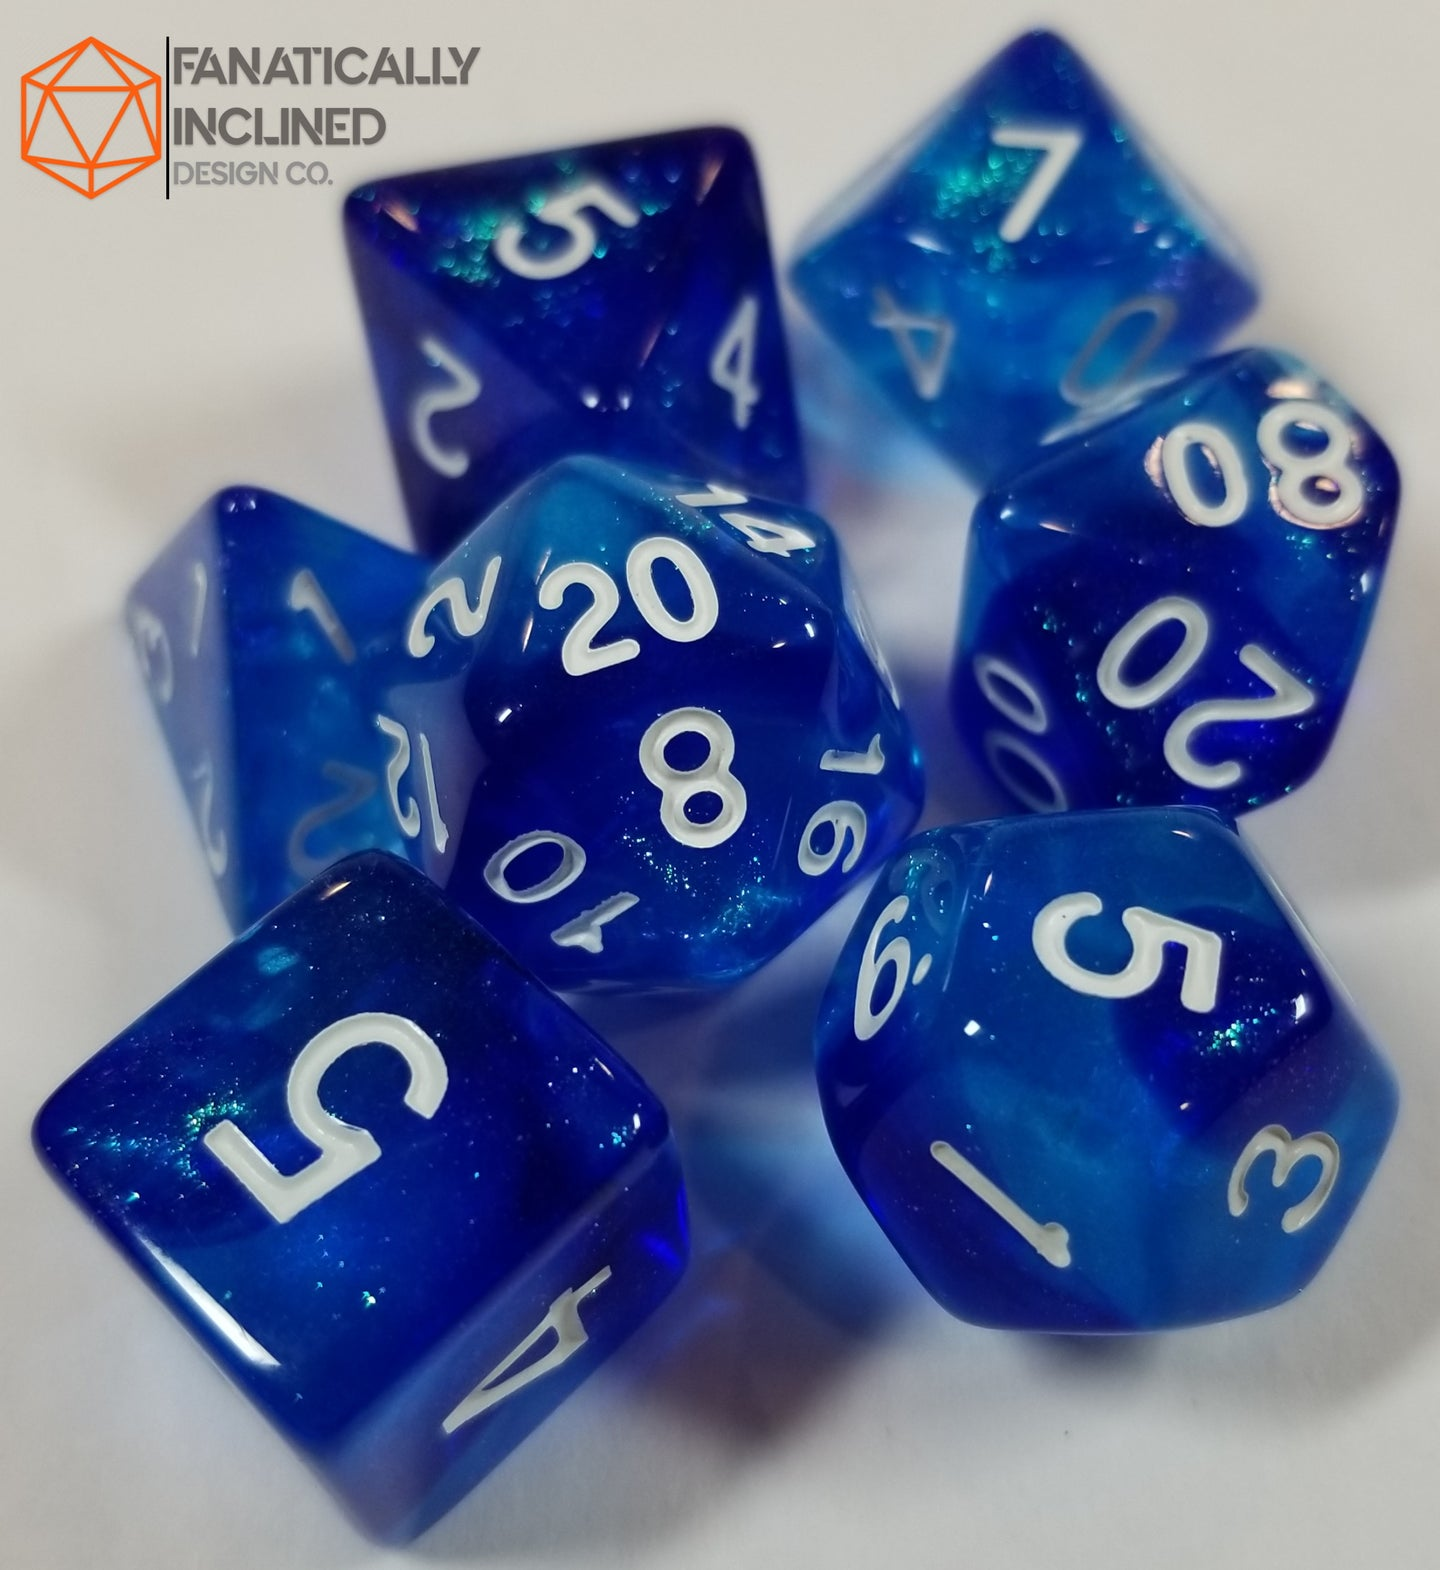 Blue and Light Blue Glitter Galaxy 7pc Dice Set